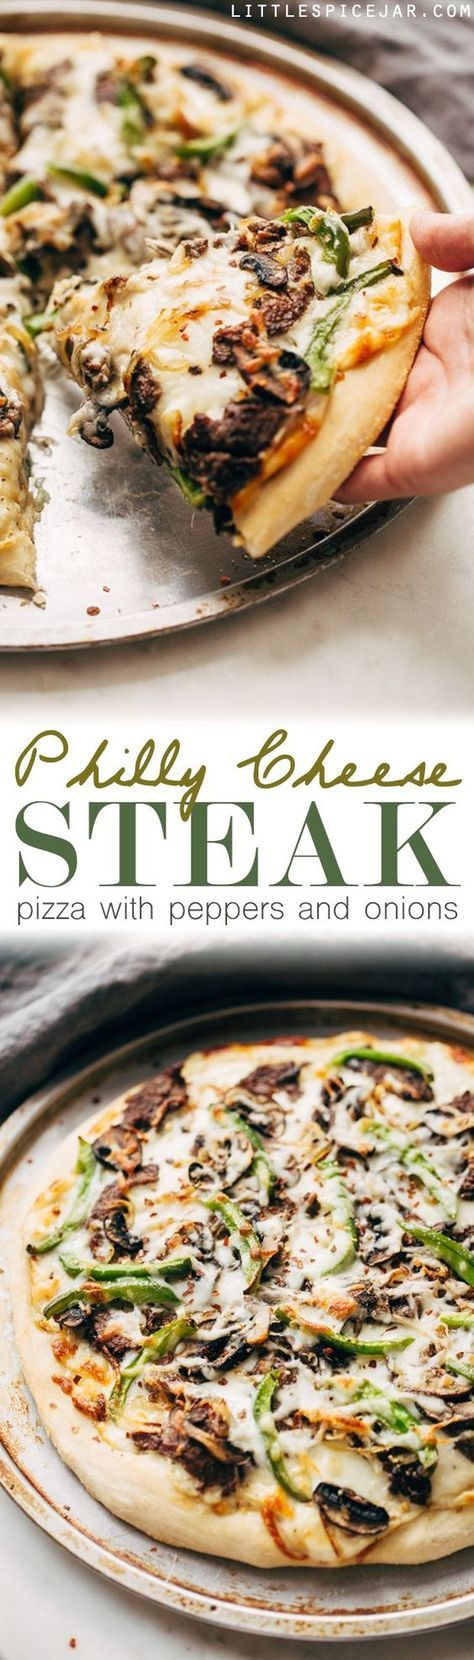 Philly Cheese Steak Pizza Recipe via Little Spice Jar - Change up your Friday night pizza routine with a homemade Philly cheese steak pizza! Loaded with tons of veggies and meat, it's sure to be a crowd-pleaser!